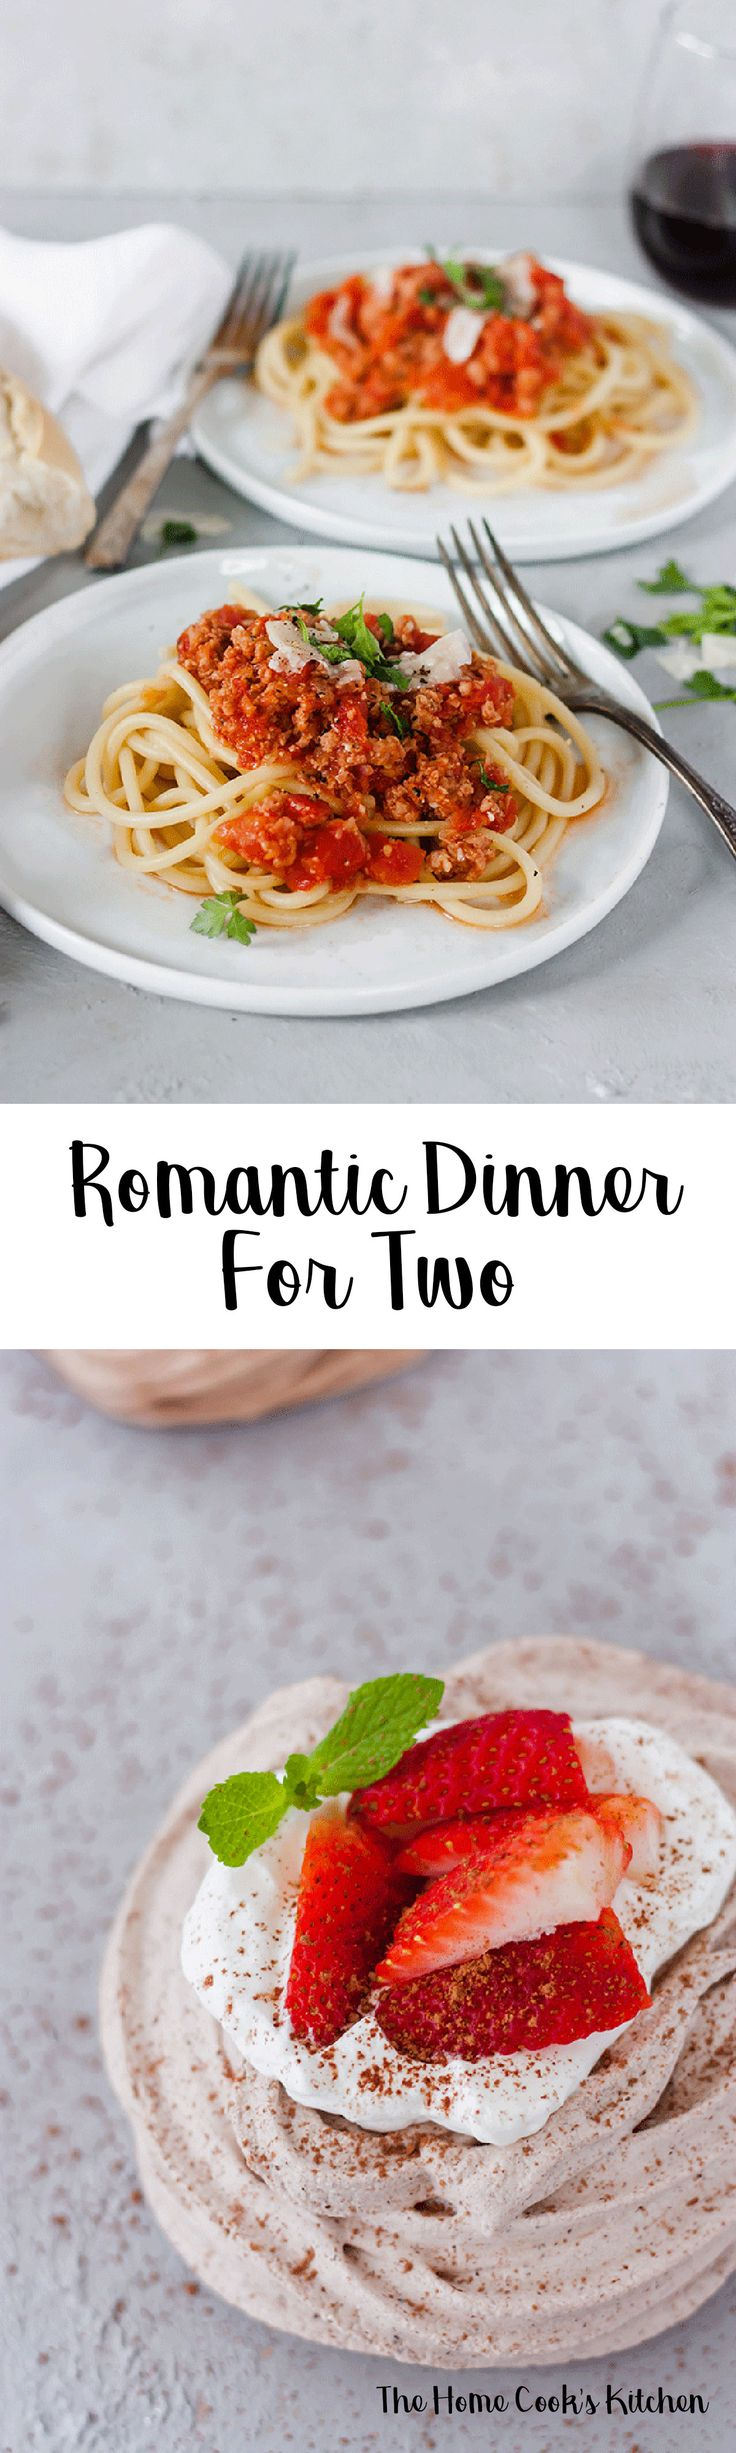 Whether it's a Valentine's Day celebration, or if you're looking to just spoil your S.O, this romantic dinner for two is for you! A beautiful bucatini all'Amatriciana and chocolate meringue nests it's all you need for a great celebration! These two recipes are easy to make and will definitely show your SO or bestie that you love and appreciate them! #romanticdinner #dinnerfortwo #dinnerfortwoathome